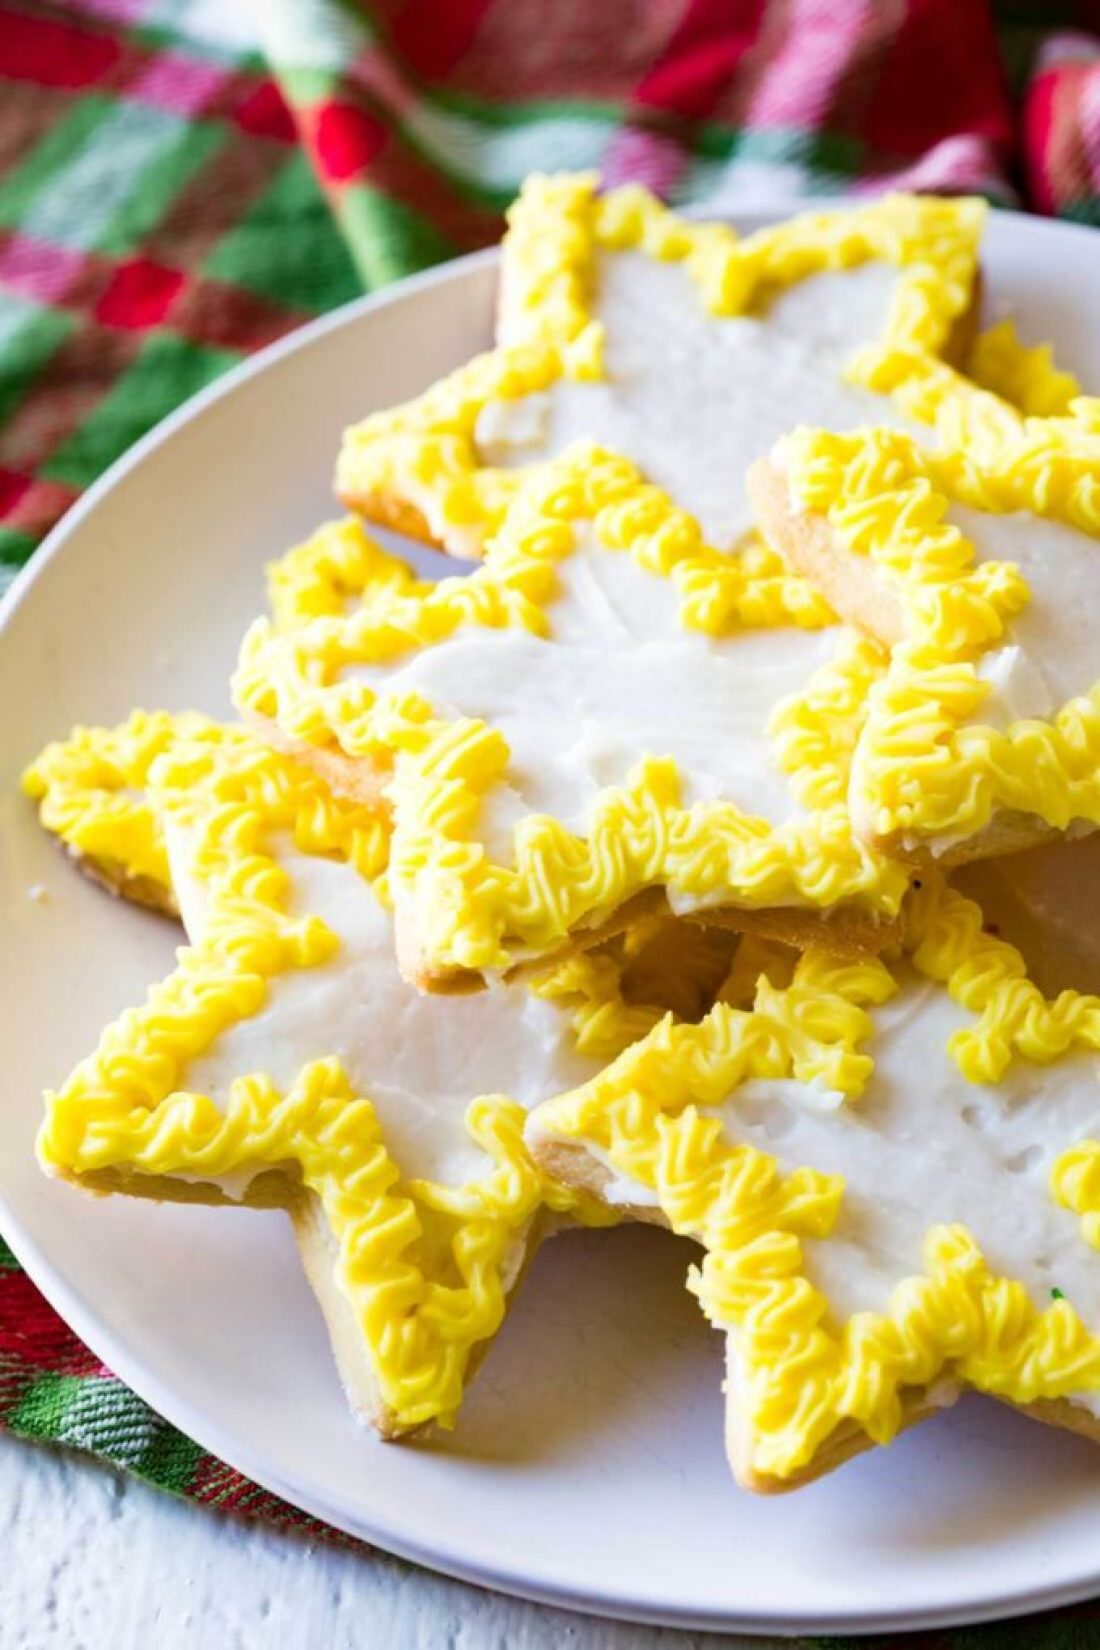 Christmas Sugar Cookie Recipe: Crispy edges, sugary flavor, and plenty of room for your favorite icing, make this sugar cookie classic one for your holiday arsenal!